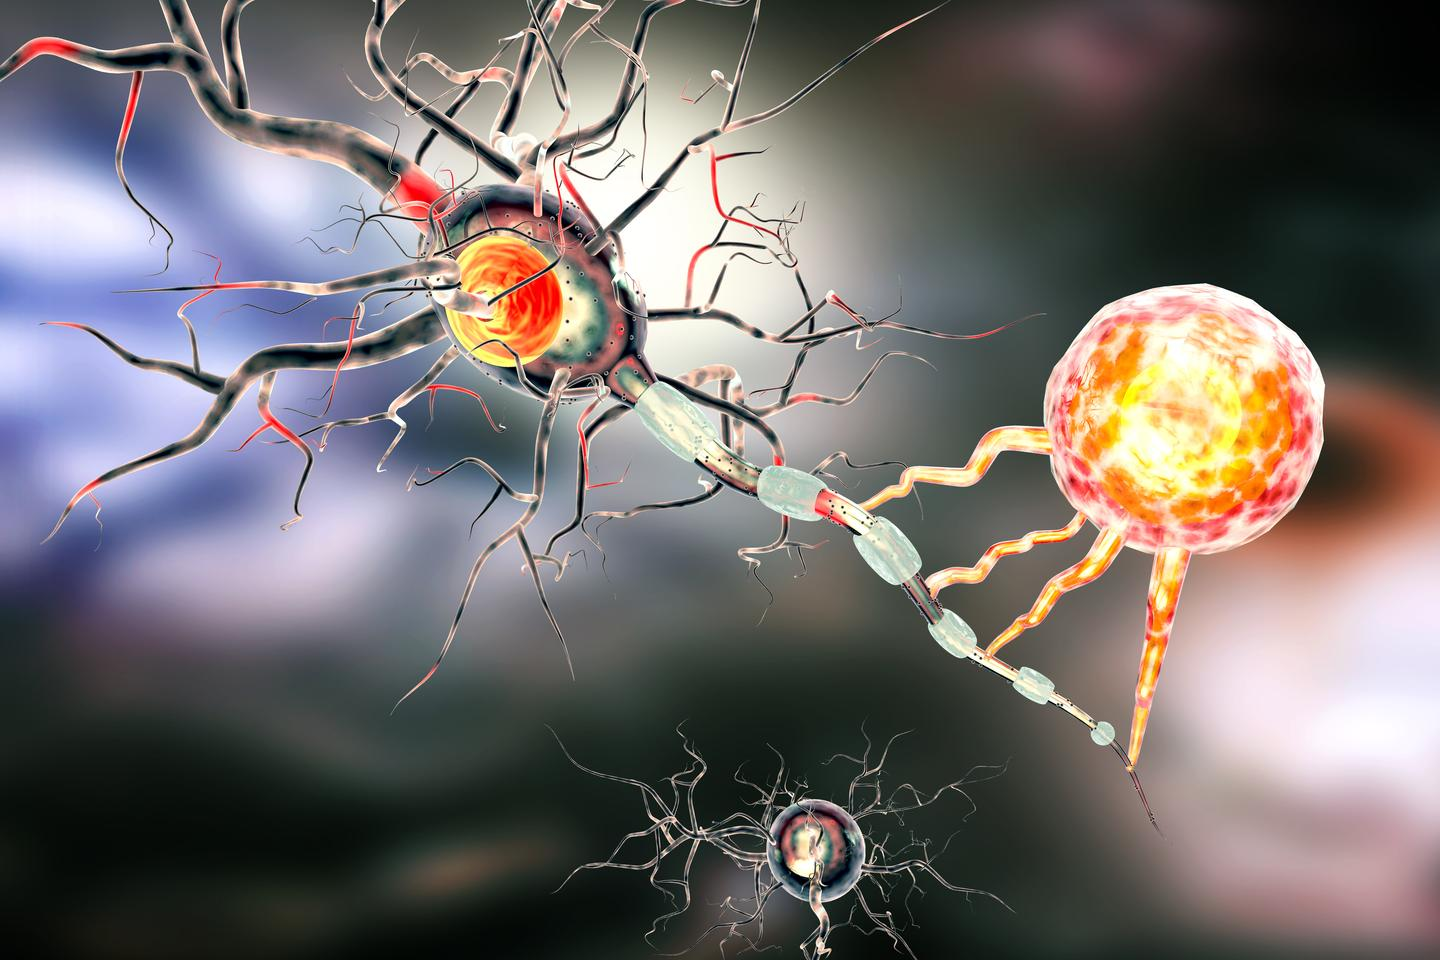 Scientists have made a key discovery around how cancer stem cells can give rise to recurring brain tumors